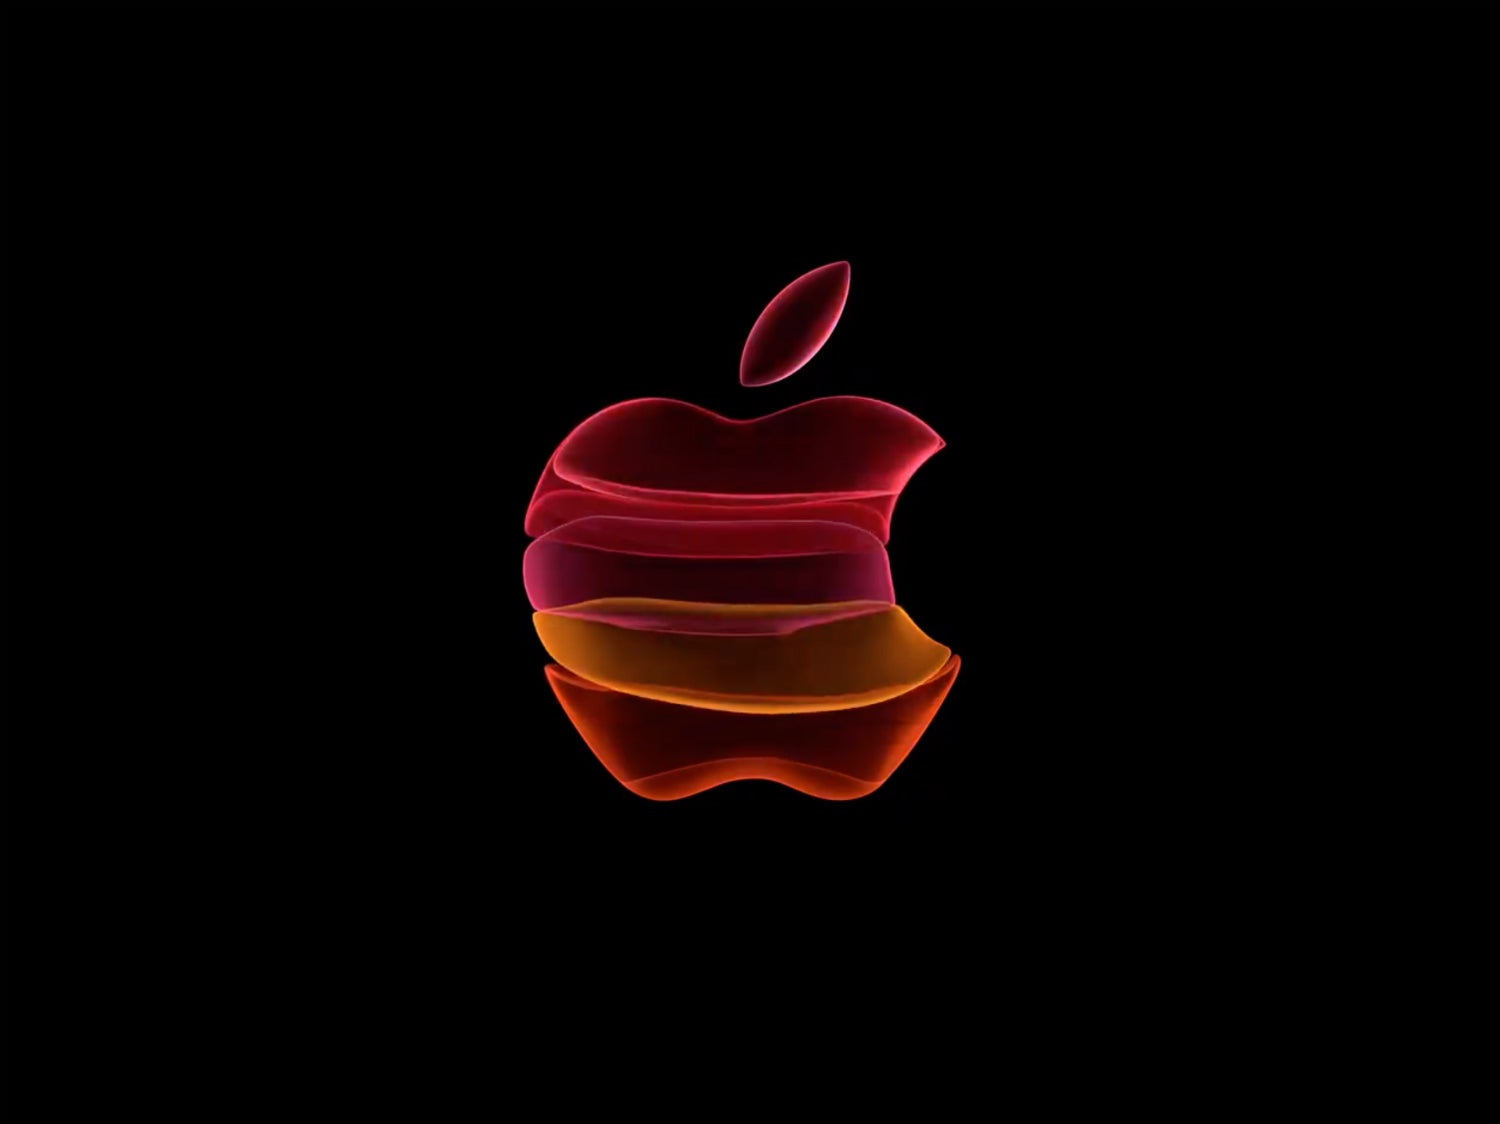 Apple Event Live Stream The Launch Of The New Iphone